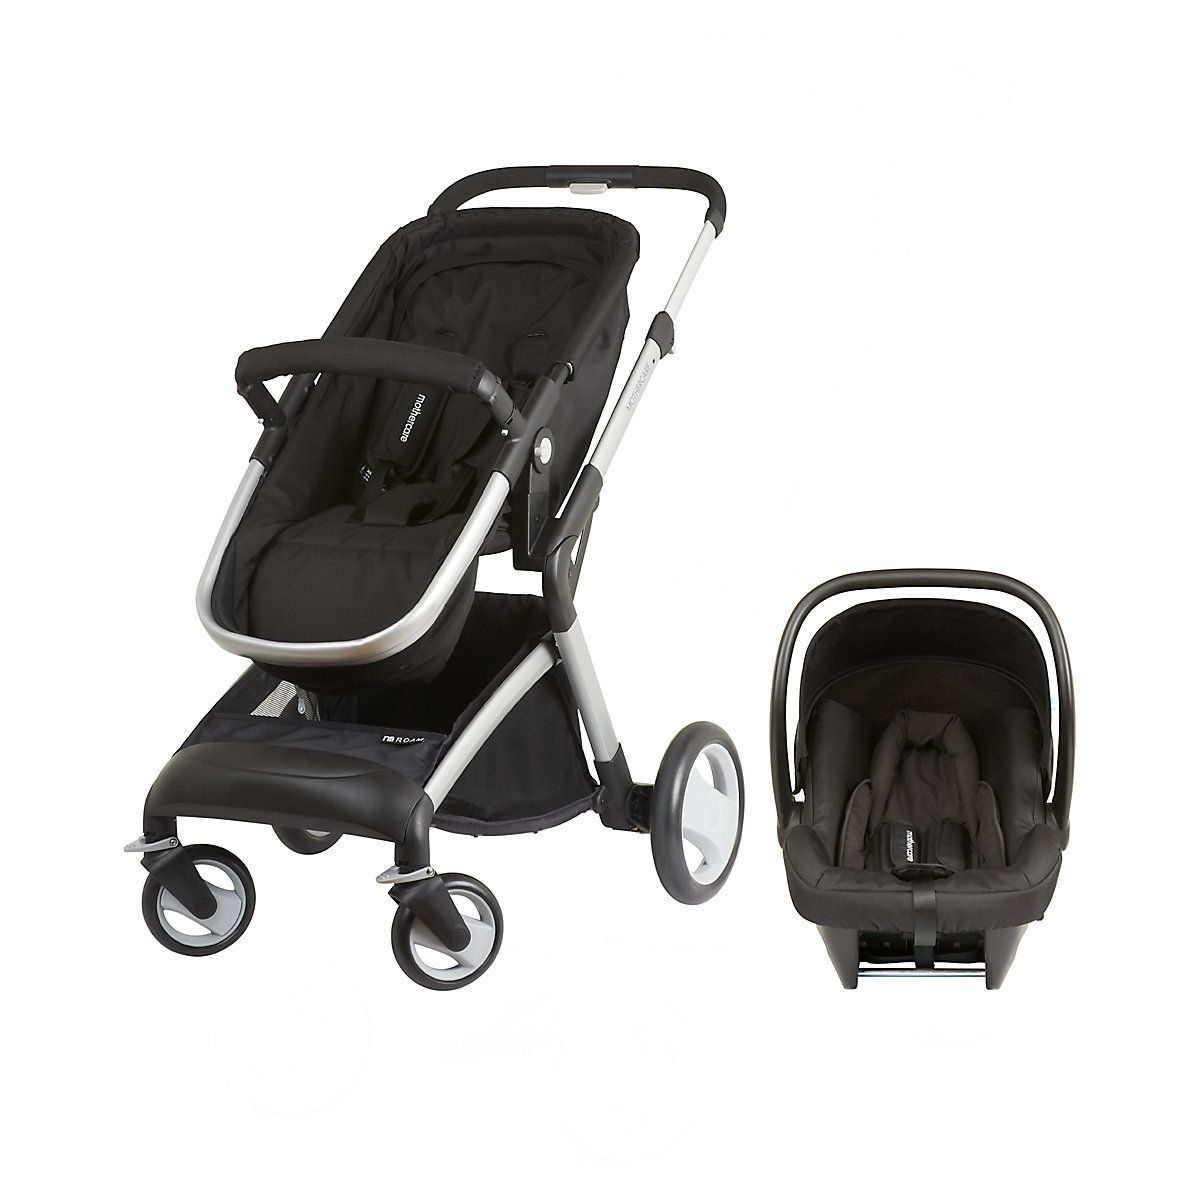 Maxi Cosi Car Seat On Mothercare Xpedior The Fantastic Value Mothercare Xpedior Pram And Pushchair